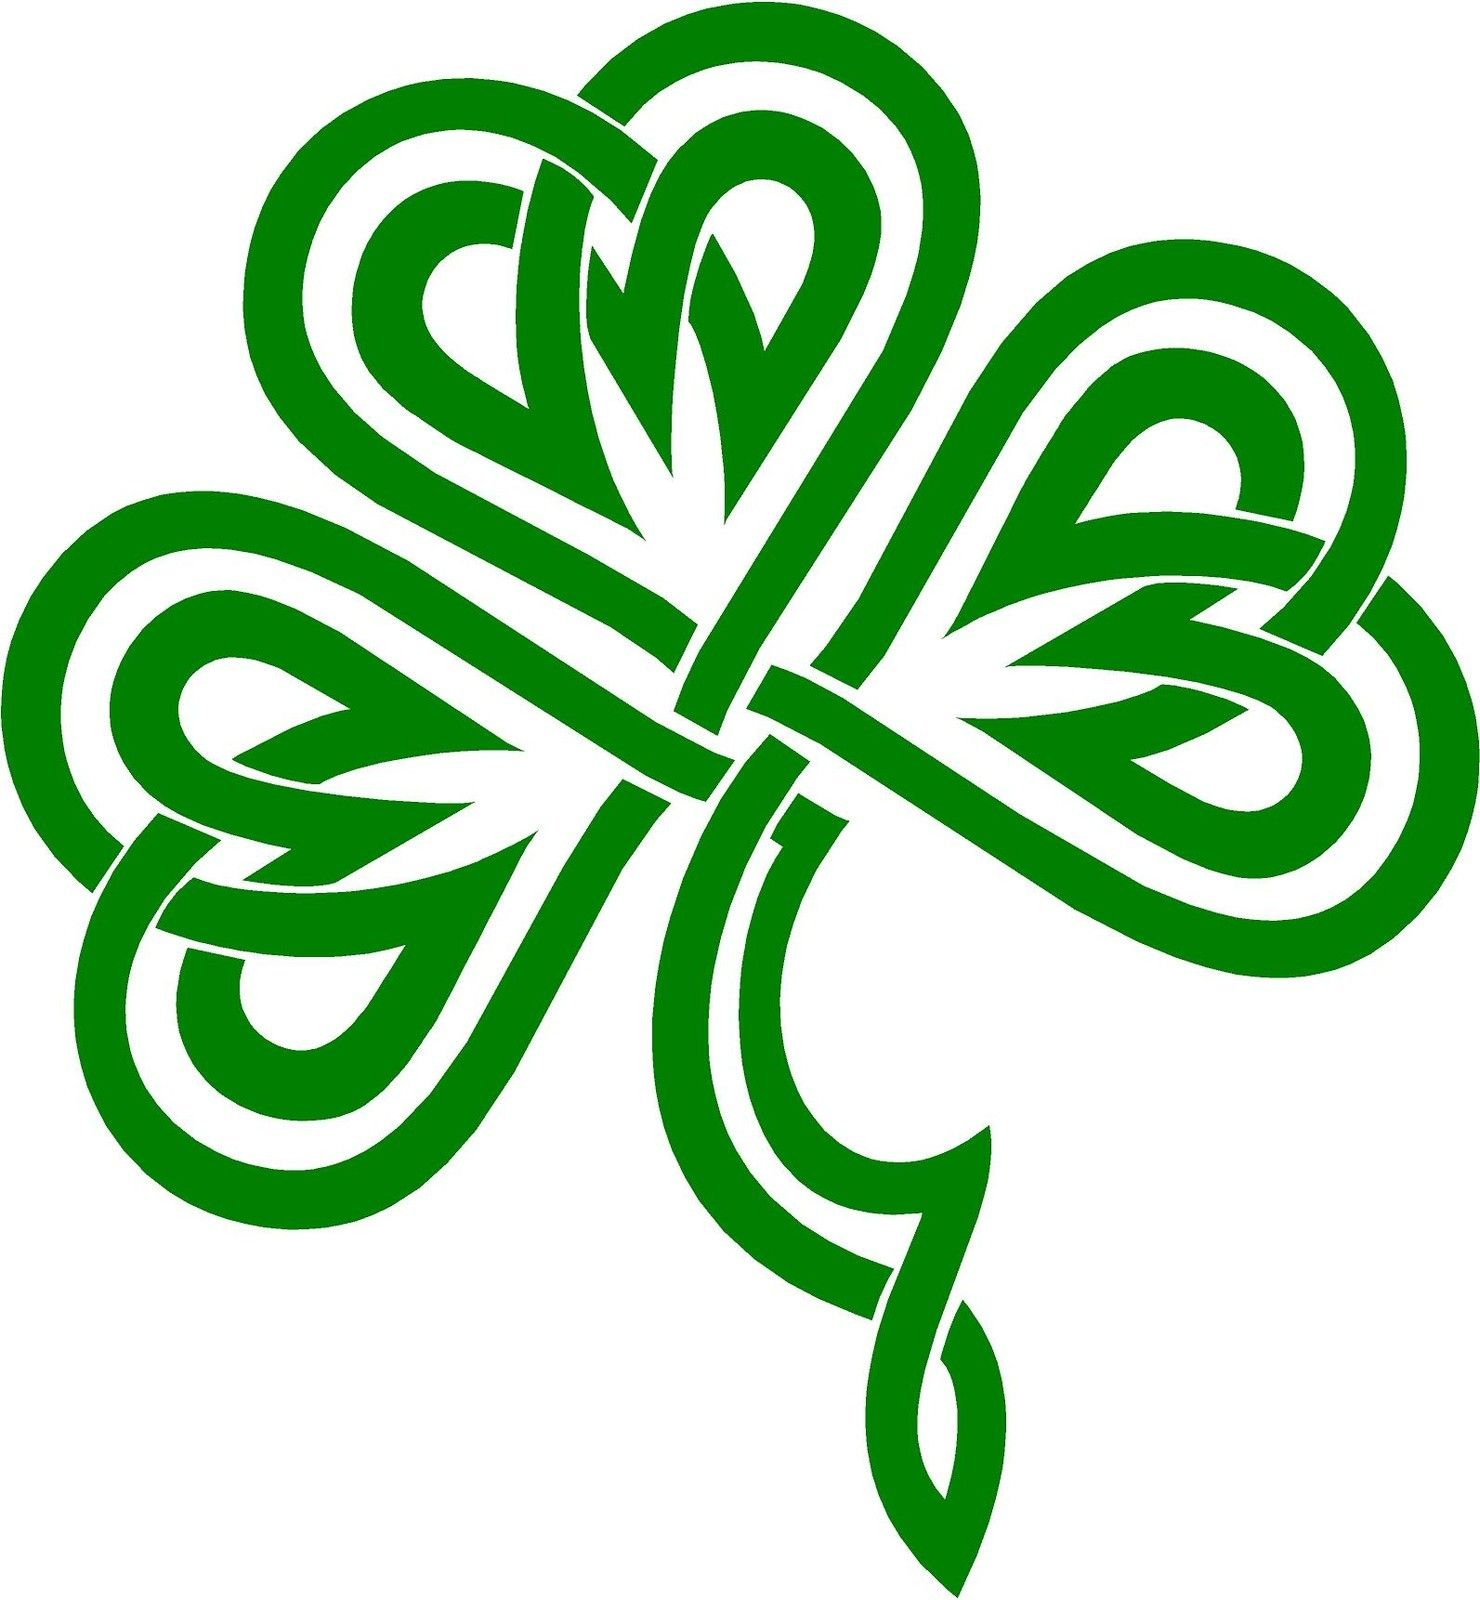 Celtic shamrock - number 4 favourite - tied | St. Paddy\' s Day ...